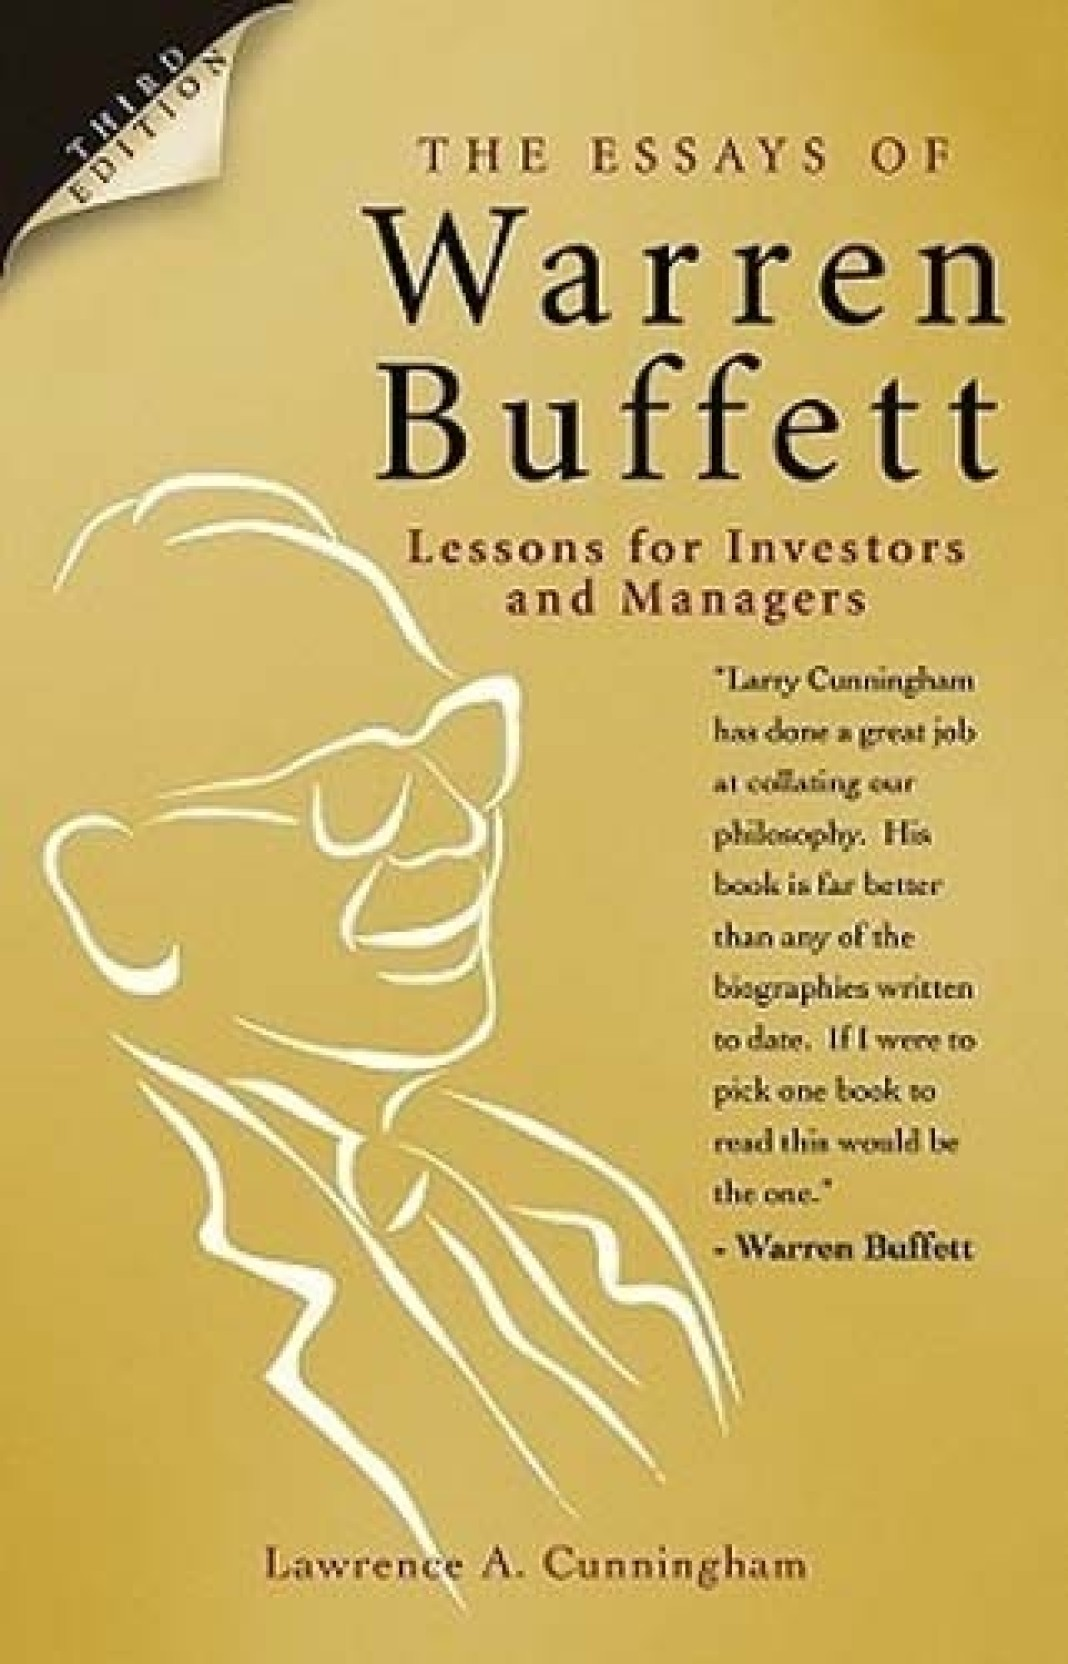 020 The Essays Of Warren Buffett Lessons For Investors And Managers Original Imaefwkrmxazxvdeq90 Essay Stirring Pages Audiobook Download Summary Full